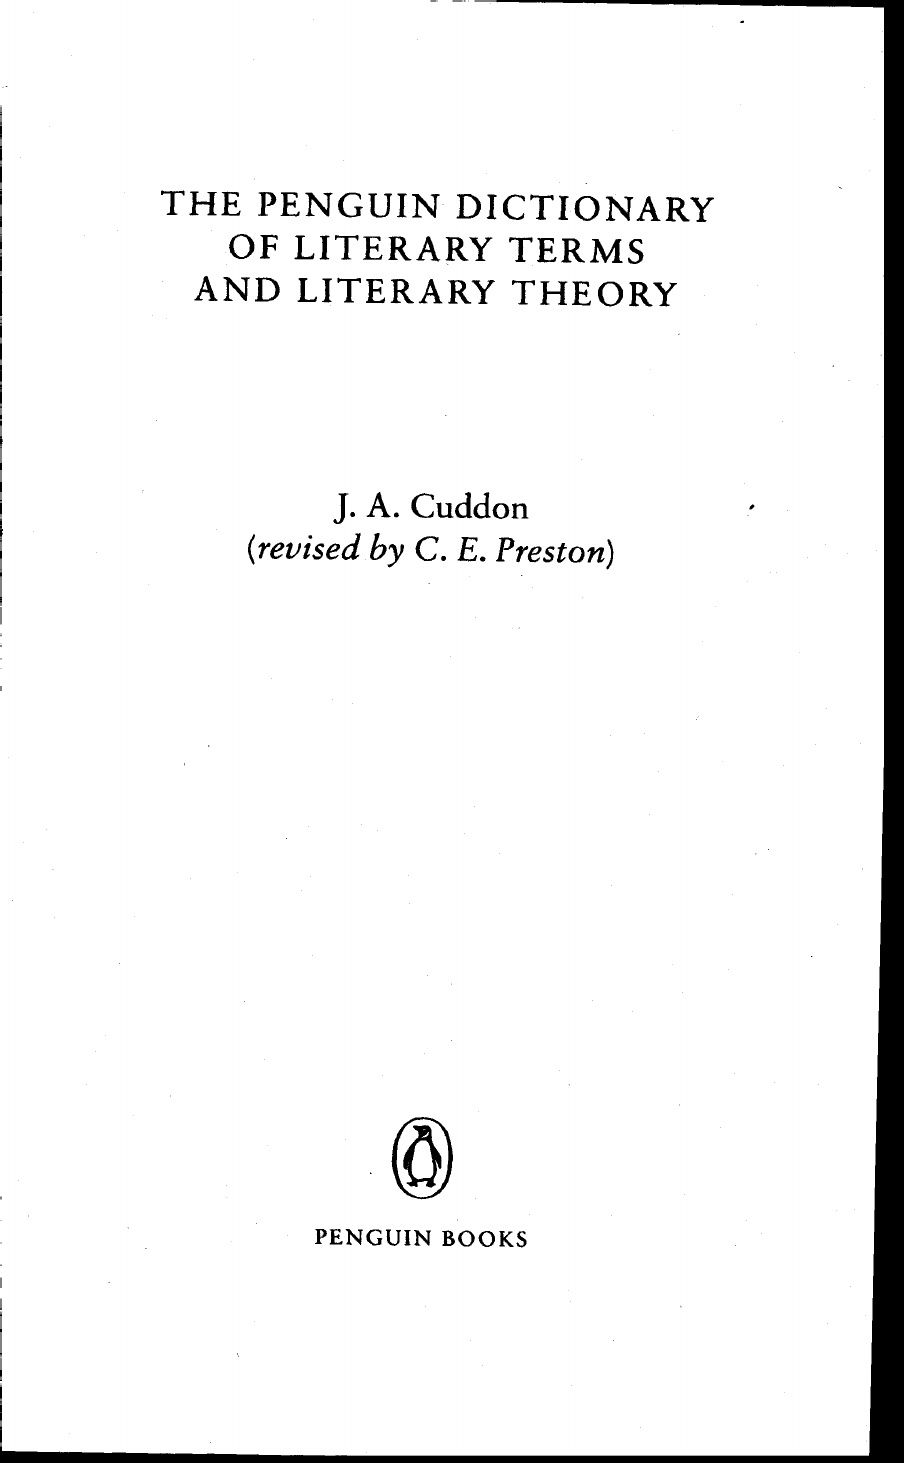 the relic john donne summary and critical analysis clasica j a cuddon english penguin dictionary of literary terms and literary theory pdf aryan